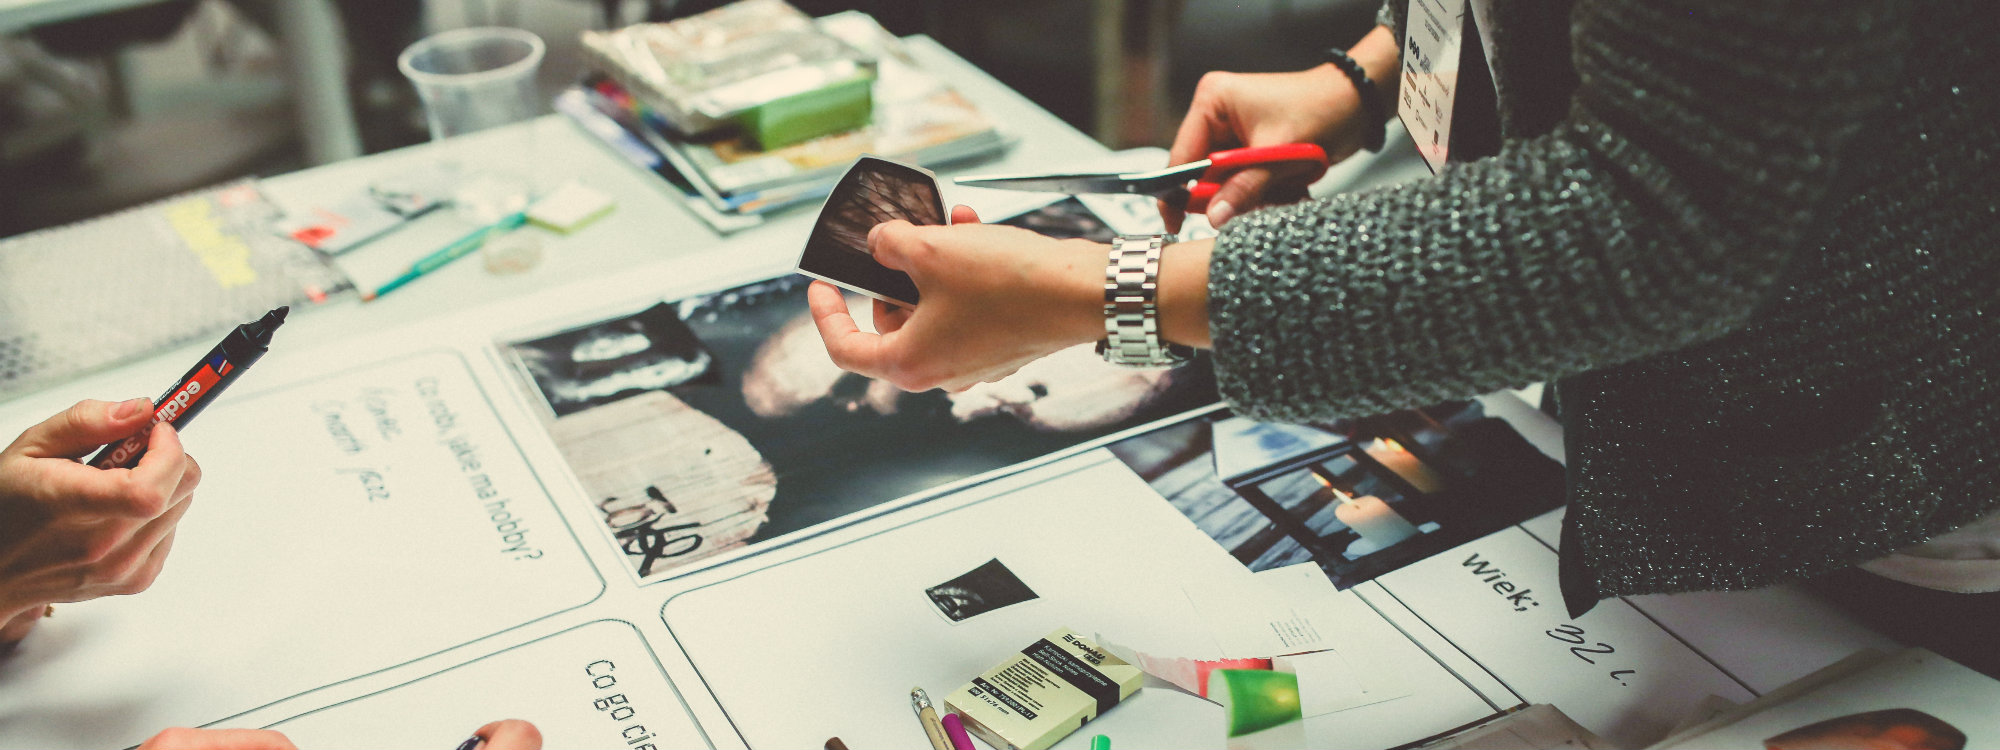 5 simple UX principles to guide your product design